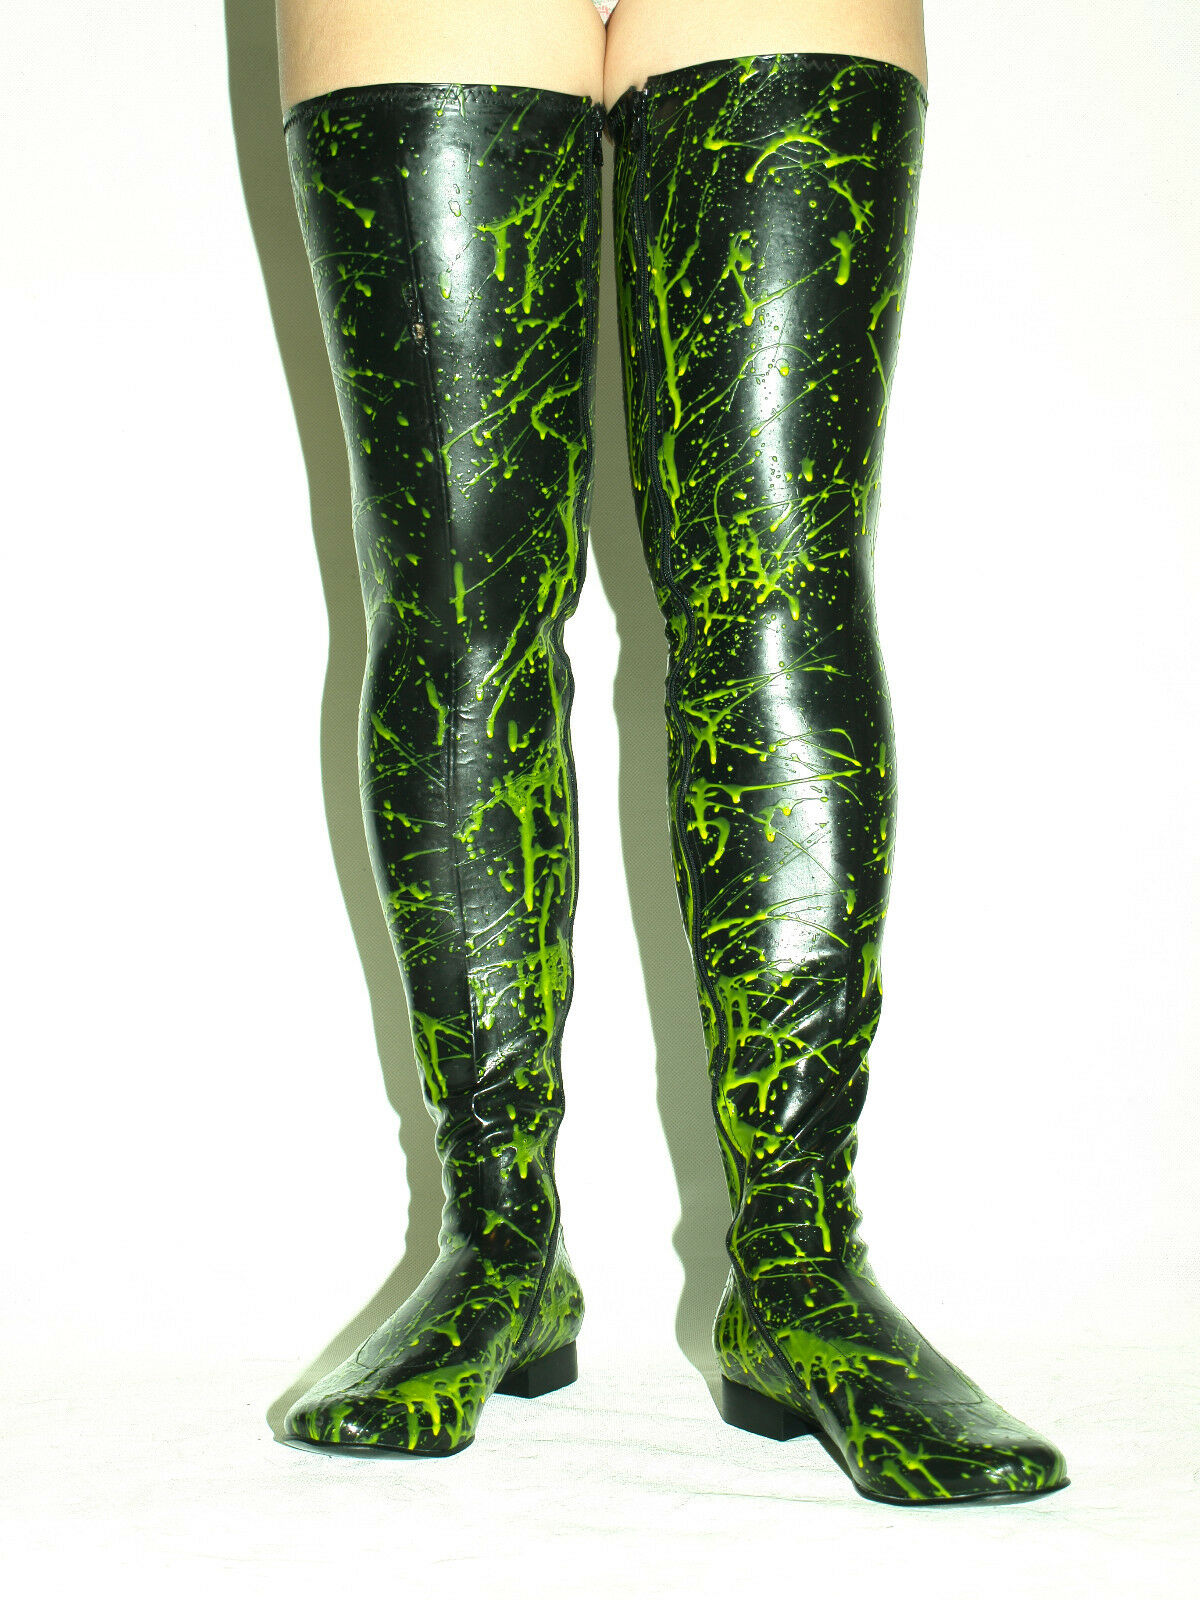 LATEX RUBBER 100%    BOOTS  SIZE 6-16 HEELS-0' -                 -PRODUCER  POLAND d0e29f